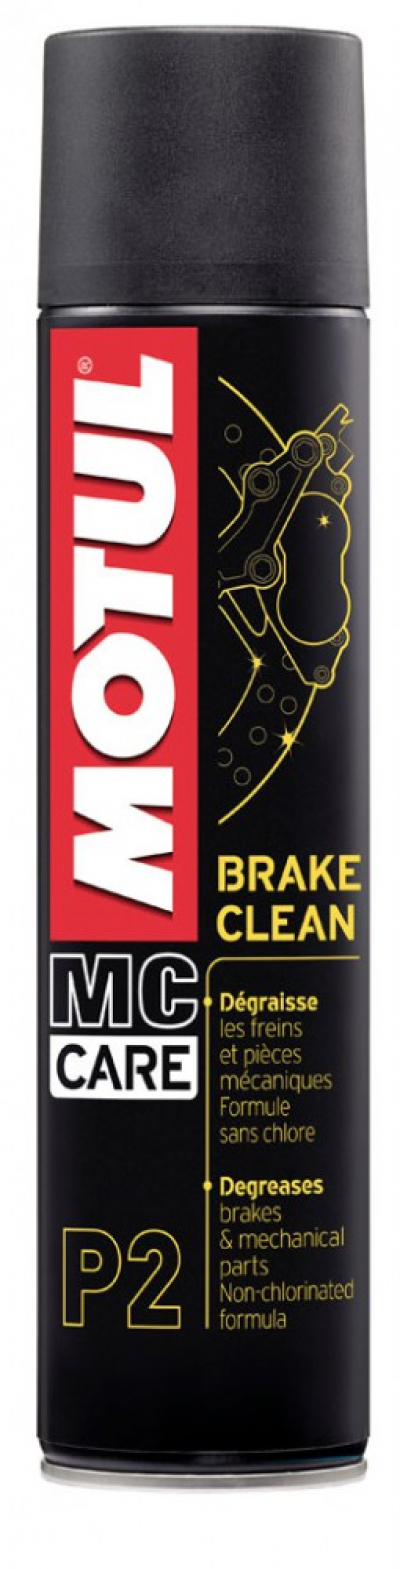 MC CARE ™ P2 BRAKE CLEAN